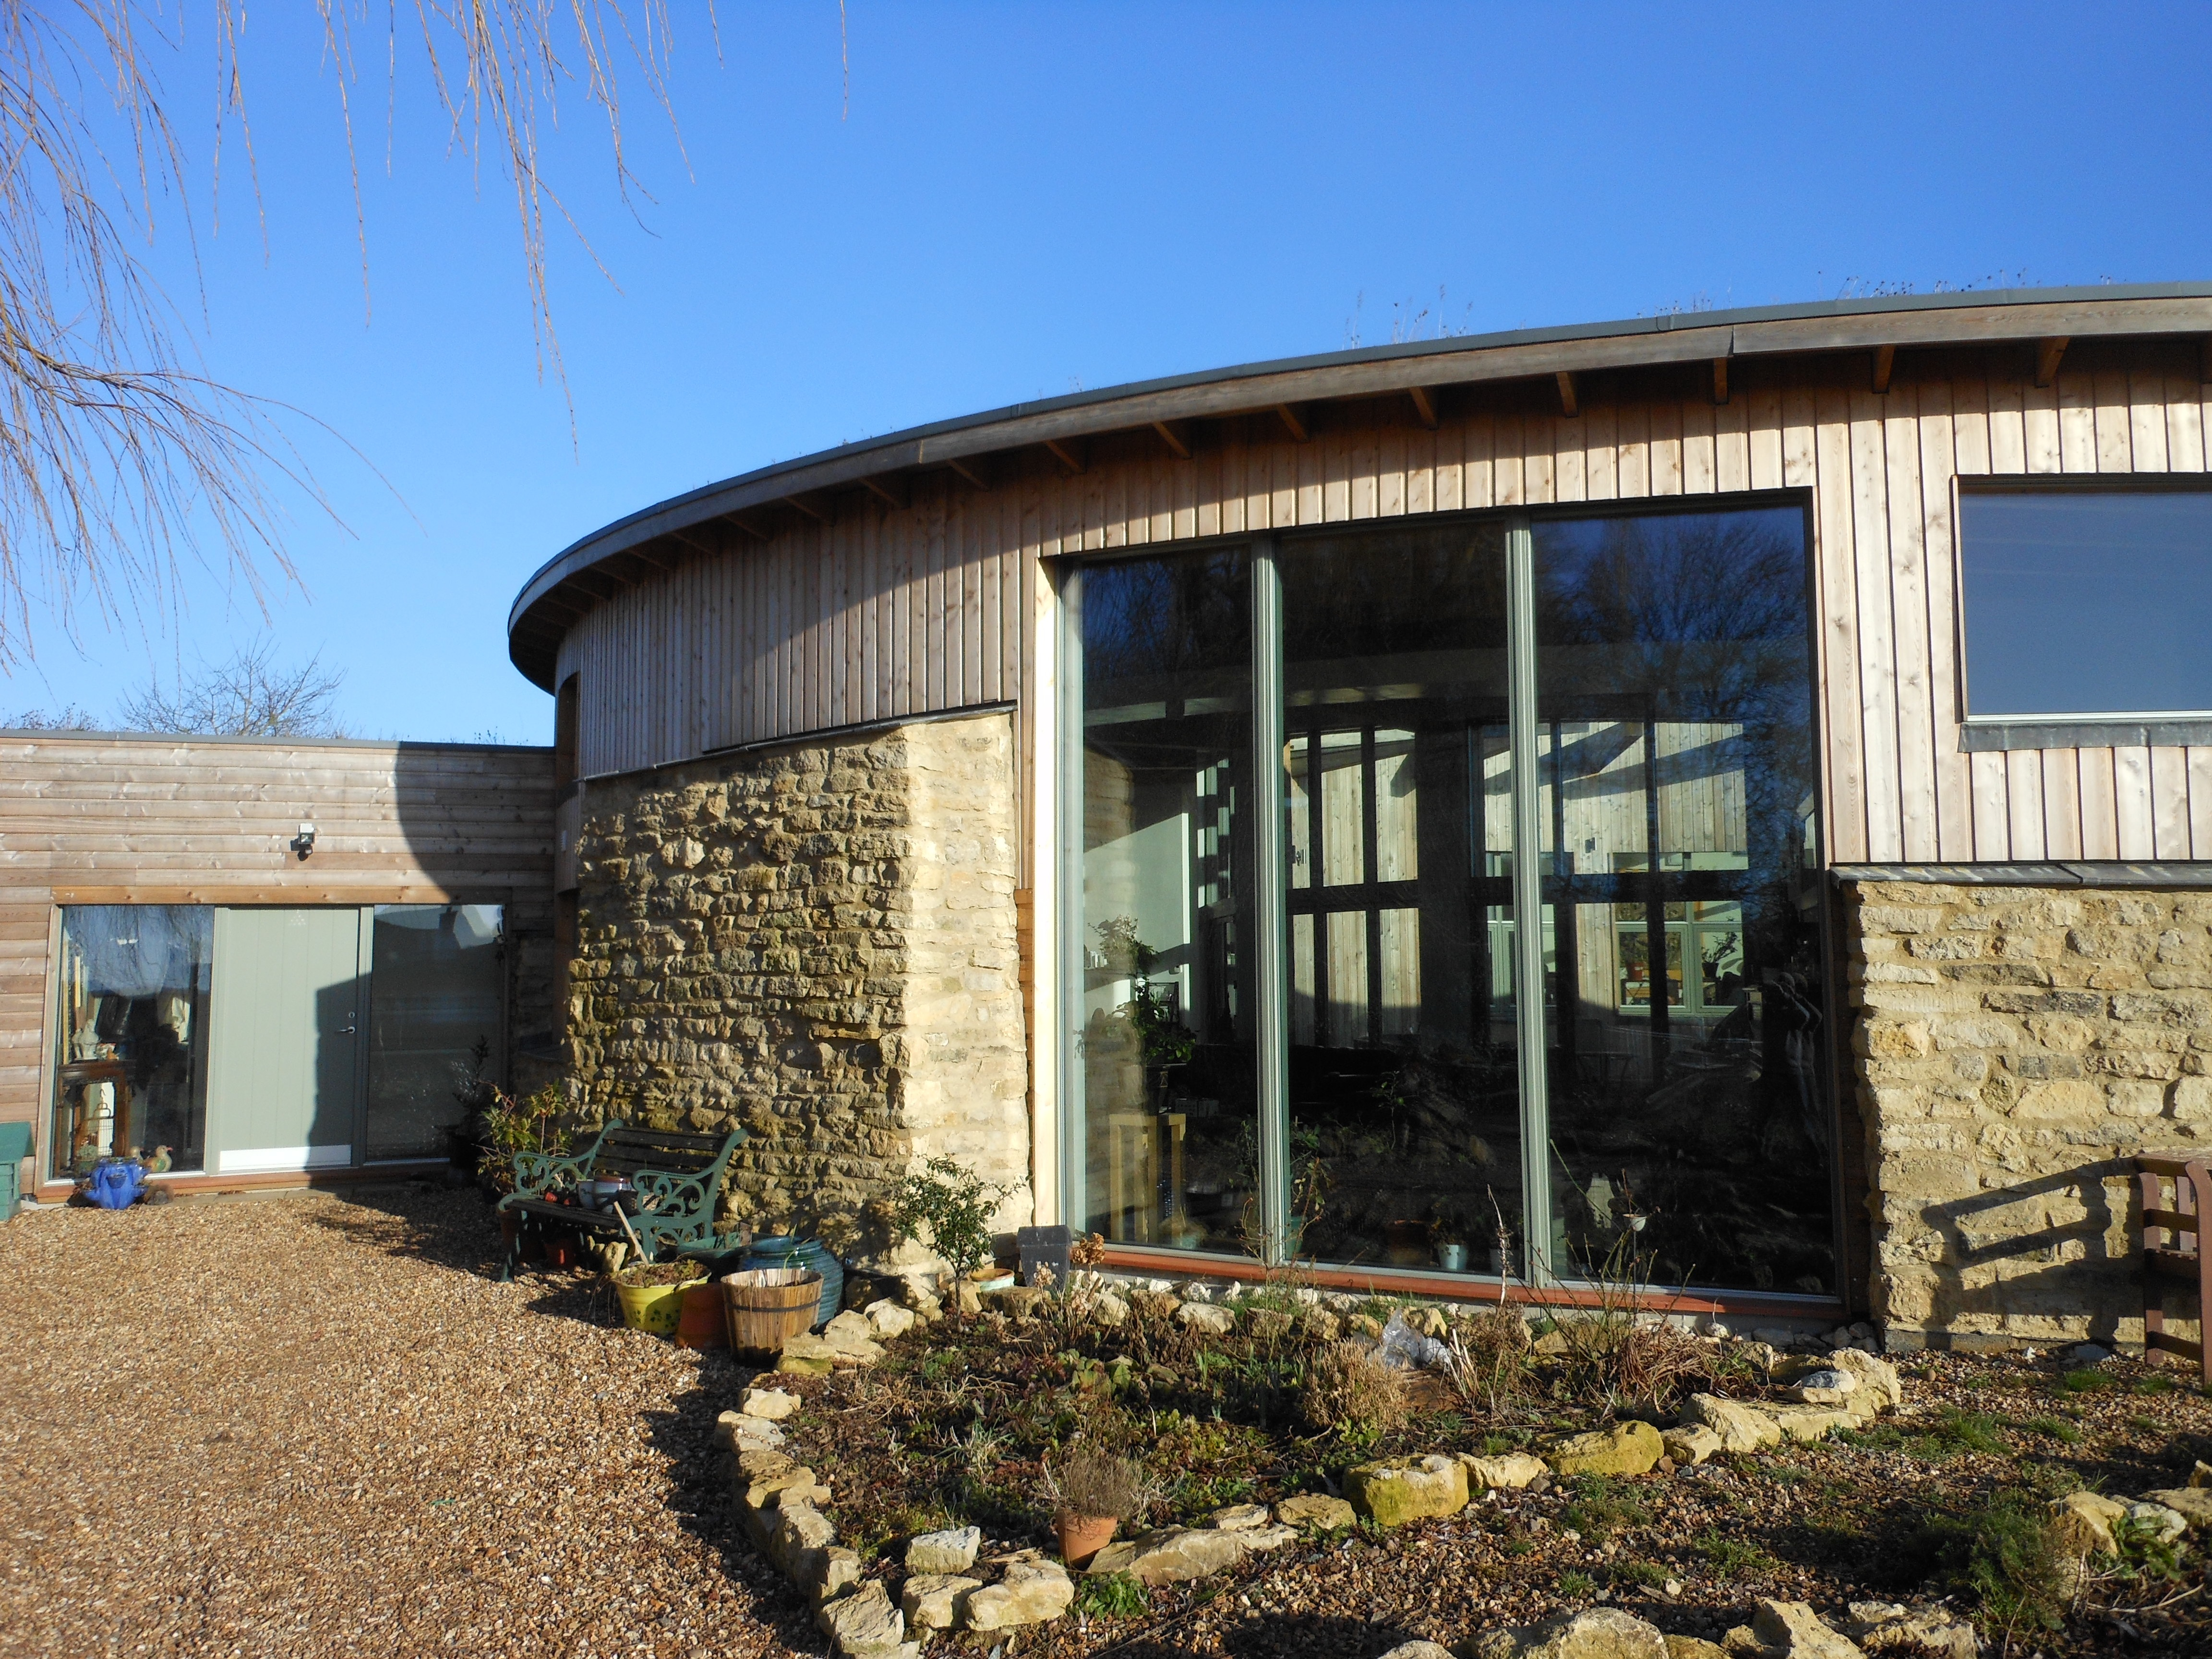 Roundhouse Grand Designs Project - new images #fb #in